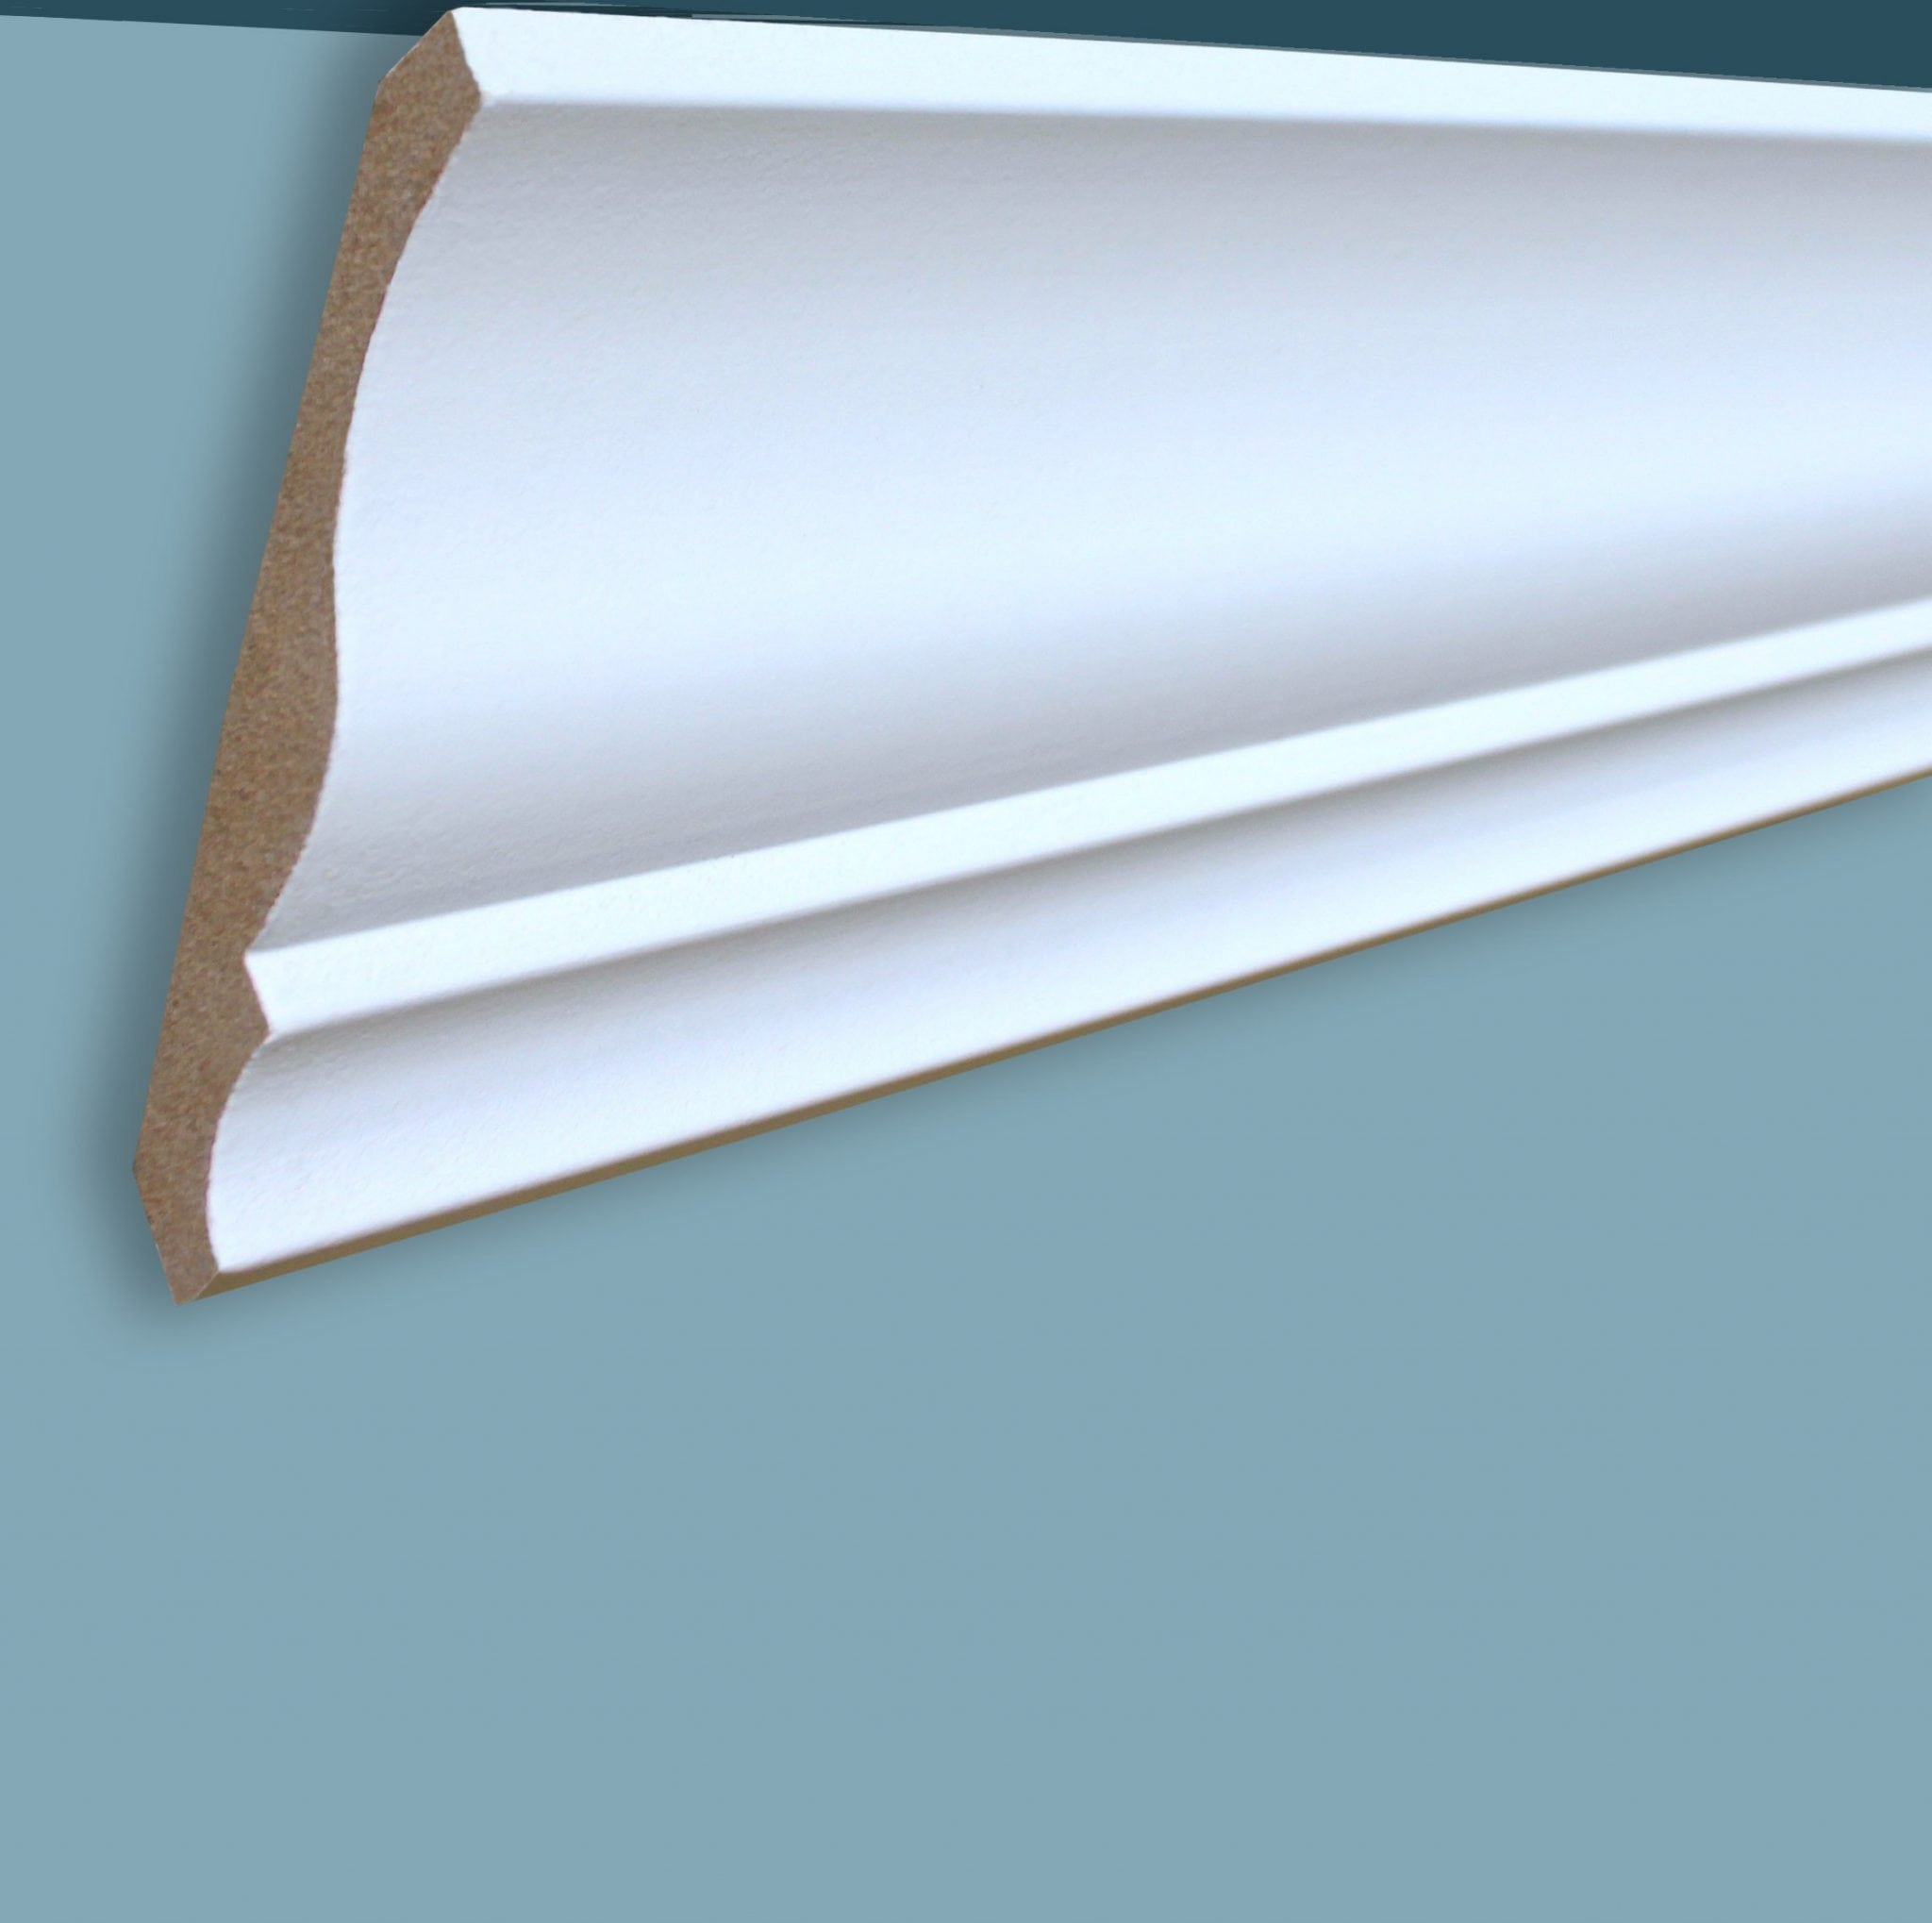 Primed moldings baseboards knoa 39 s for 9 inch crown molding